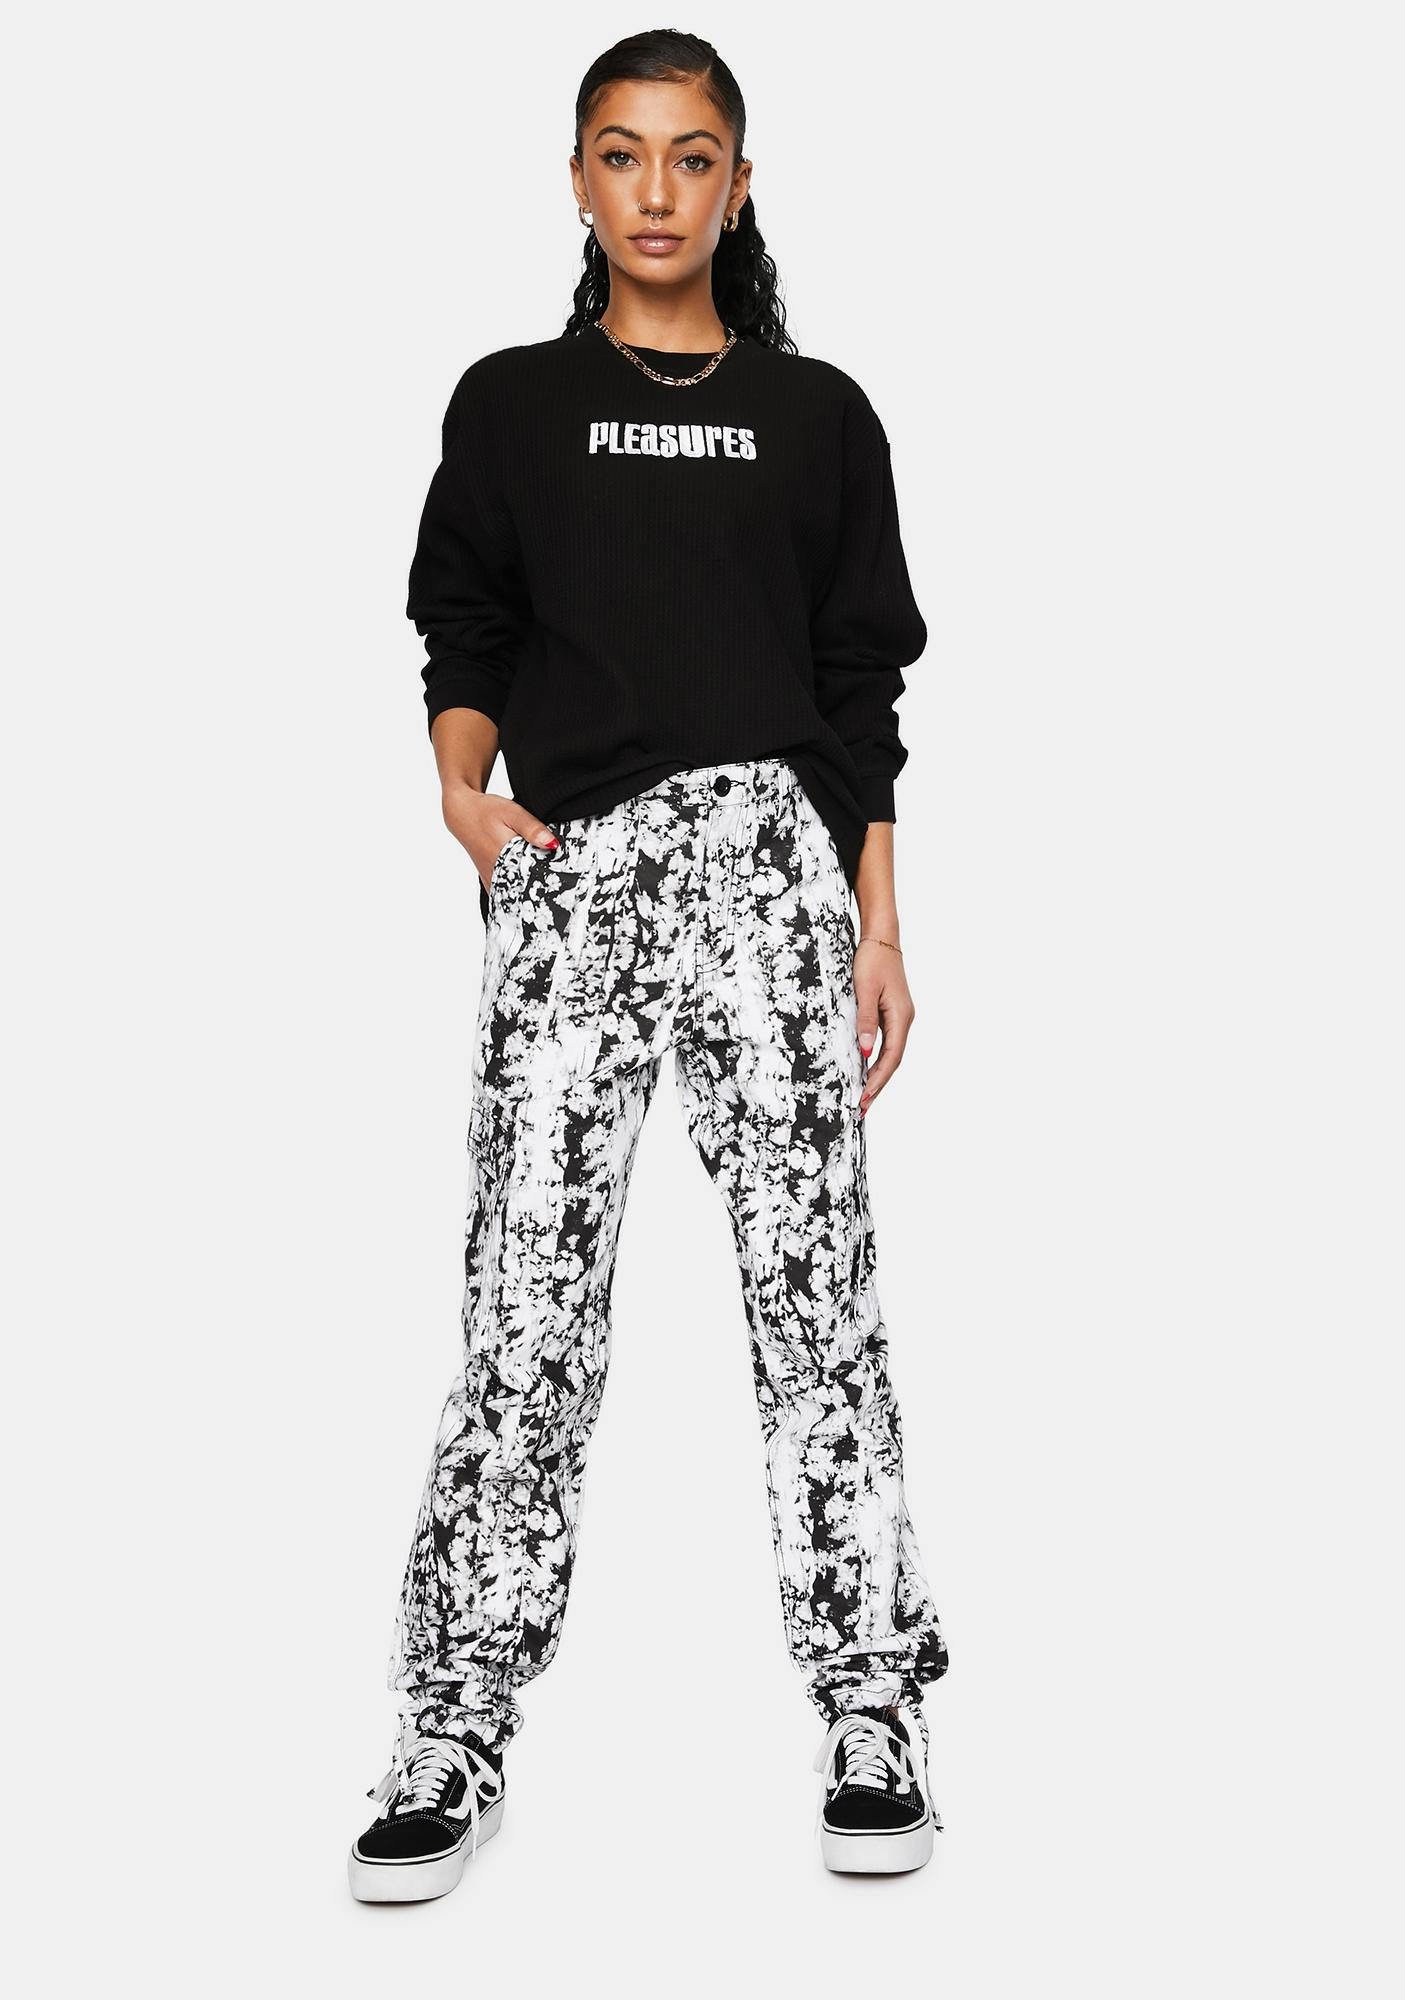 Pleasures Moma Tie Dye Cargo Pants